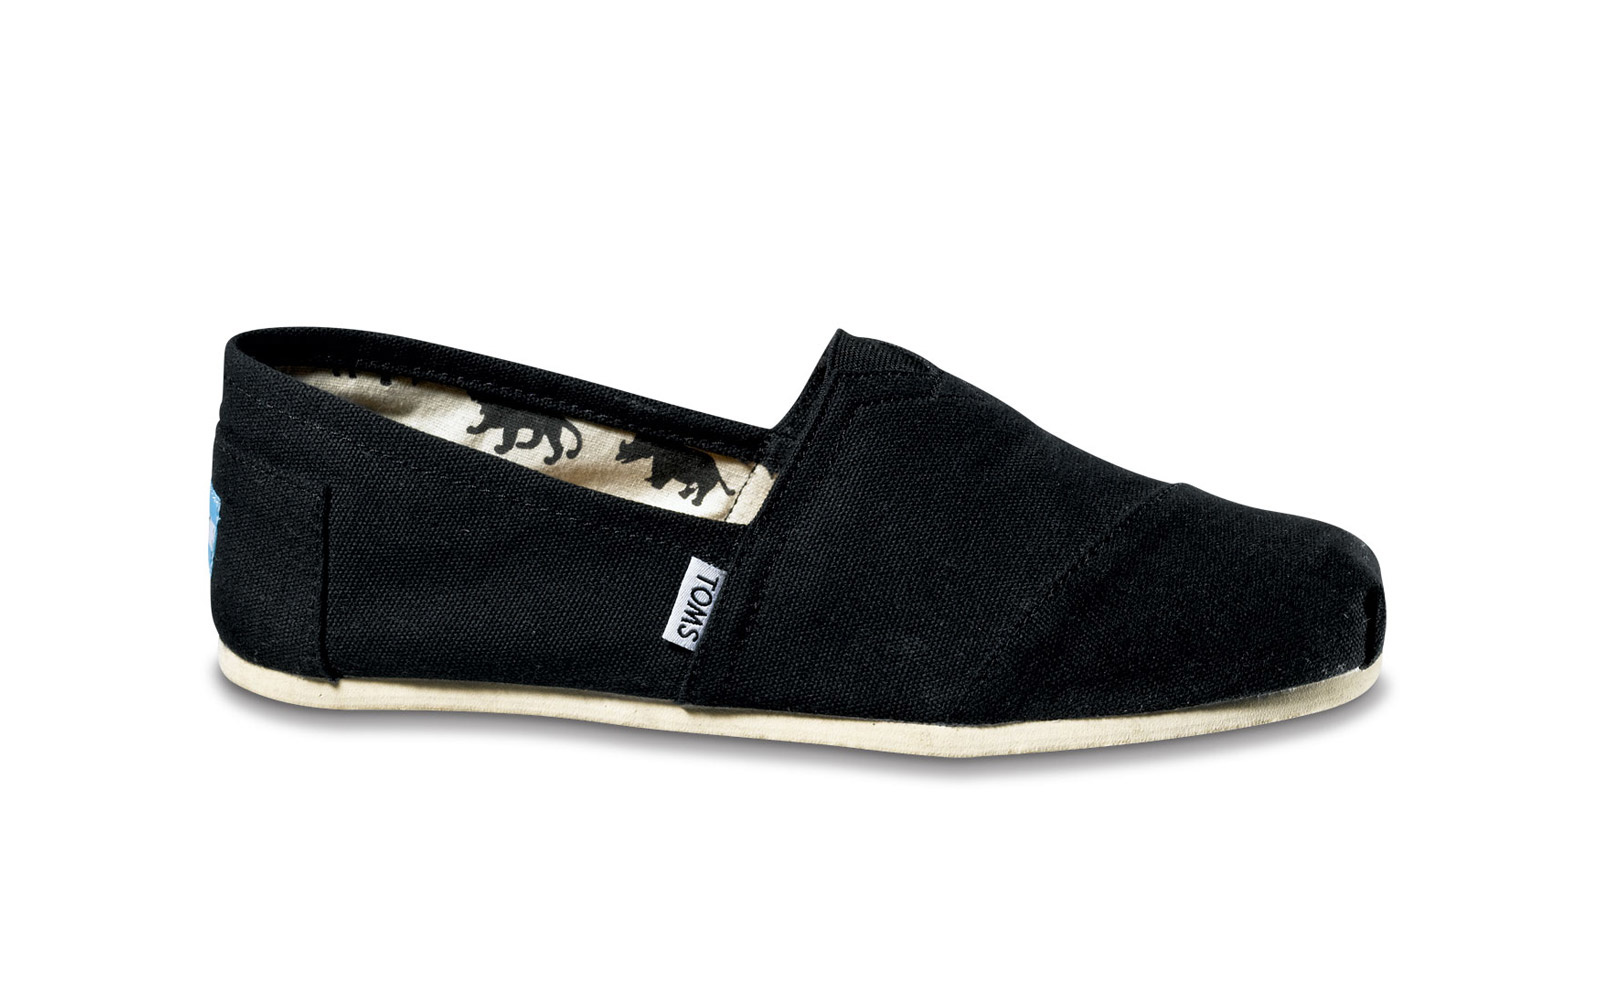 68753352155 Best For  Casual Slip-ons. toms comfortable walking shoes formen. Courtesy of  Toms